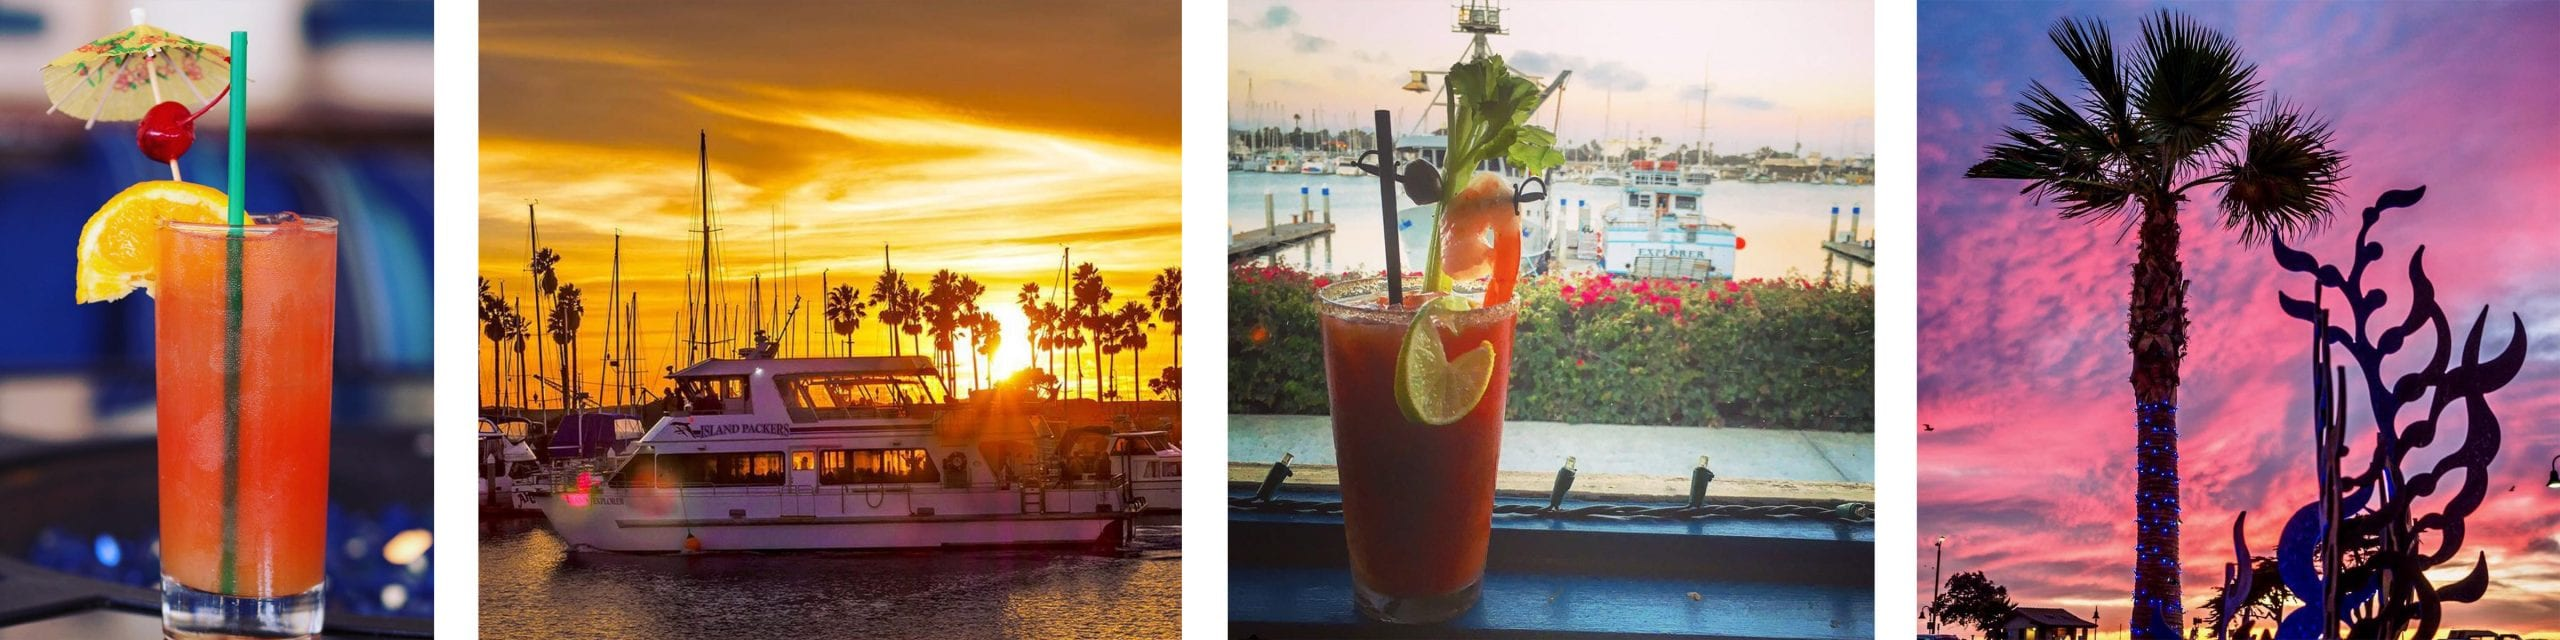 nothing better than looking at beautiful sunsets and sipping on marvelous drinks during Ventura Harbor Village's happy hours